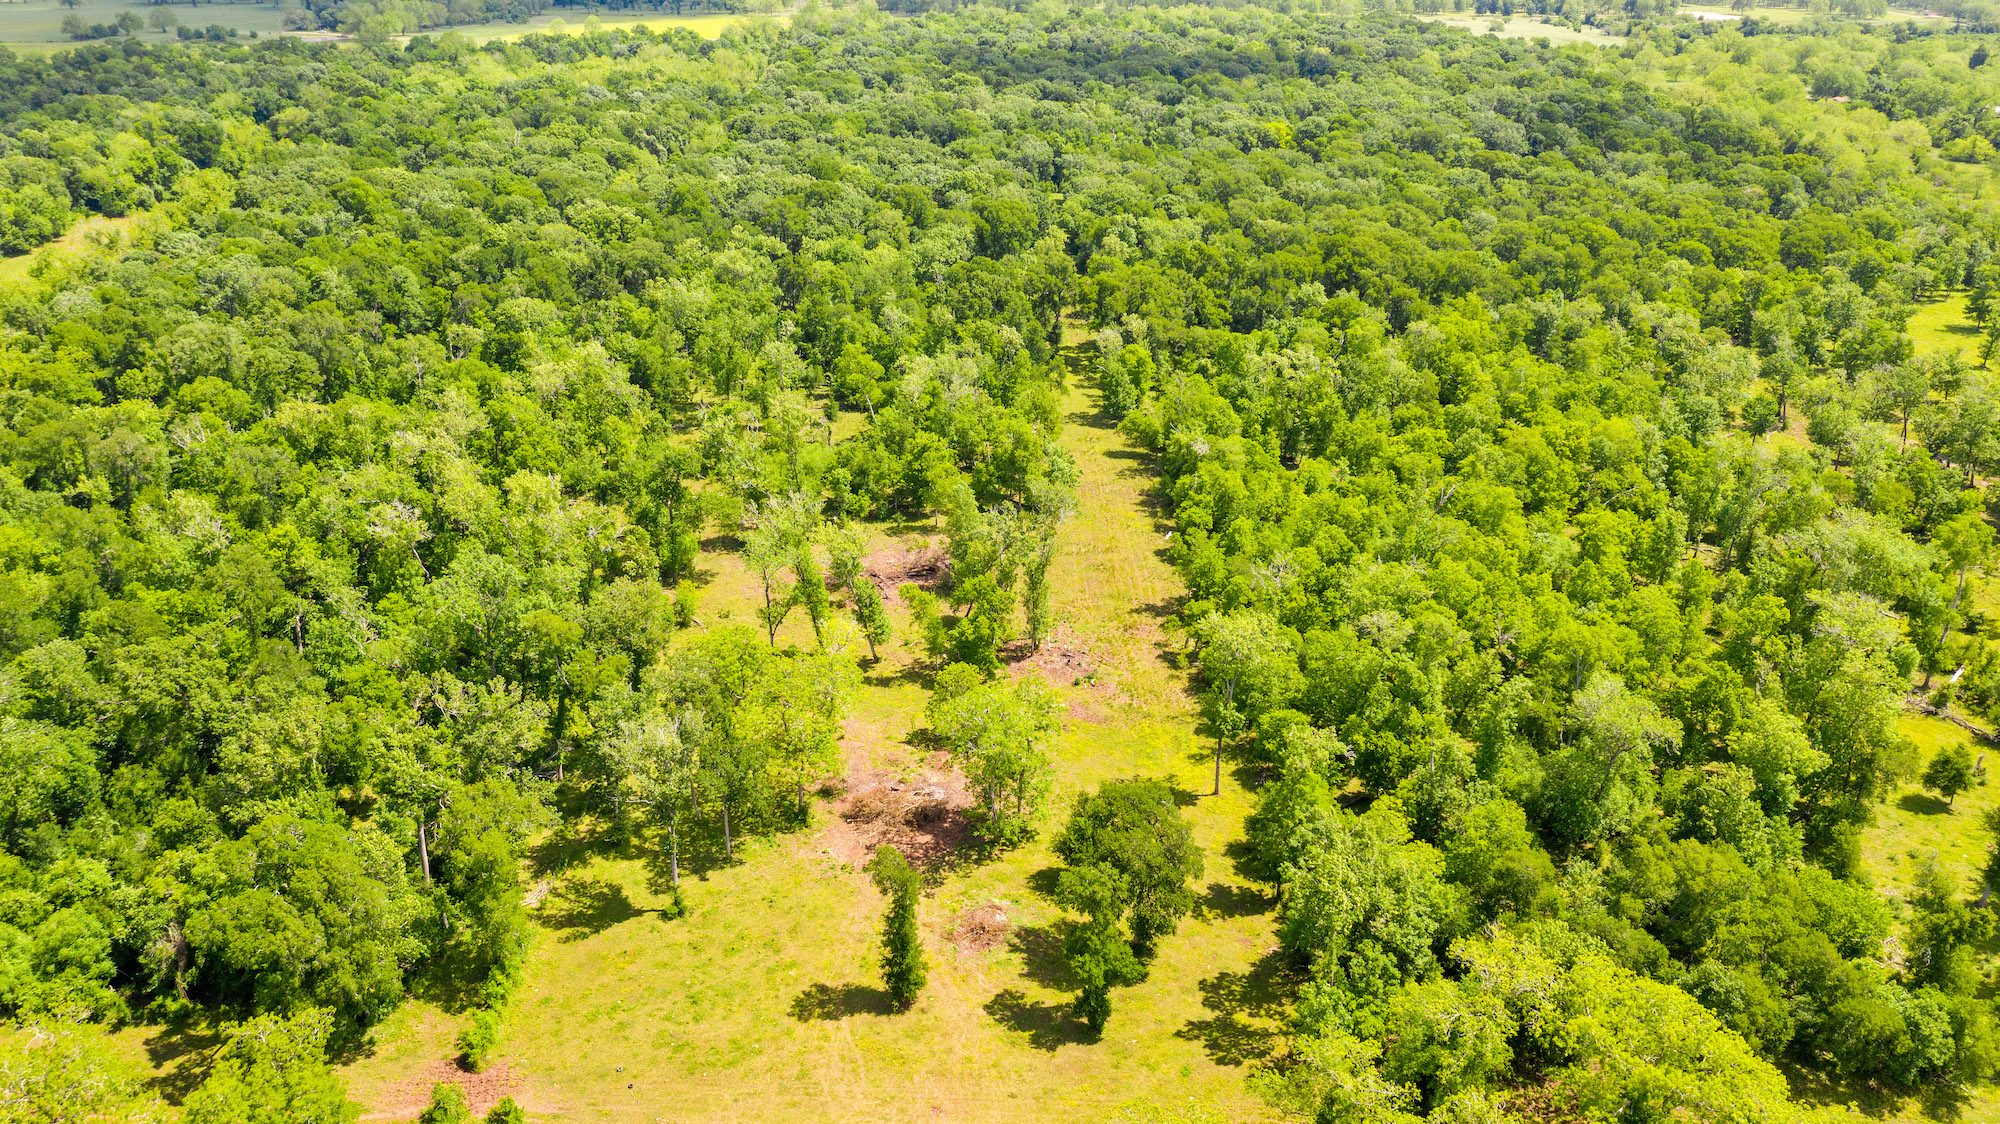 Custom Country Home with Acreage in Sealy - Image 7 of 46